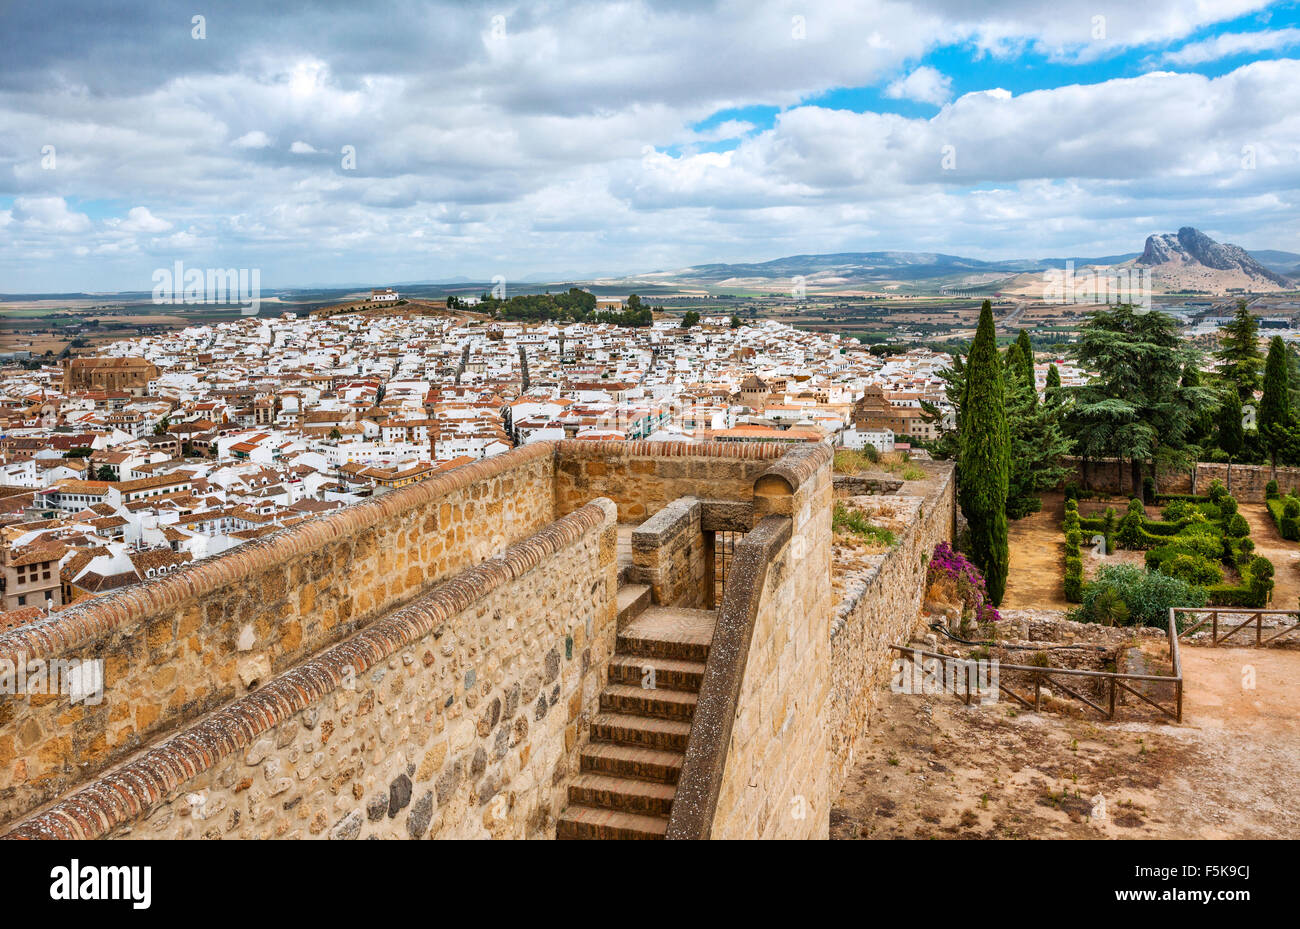 Spain, Andalusia, Province of Malaga, view of Antequera from the battlements of the Alcazaba citadel - Stock Image